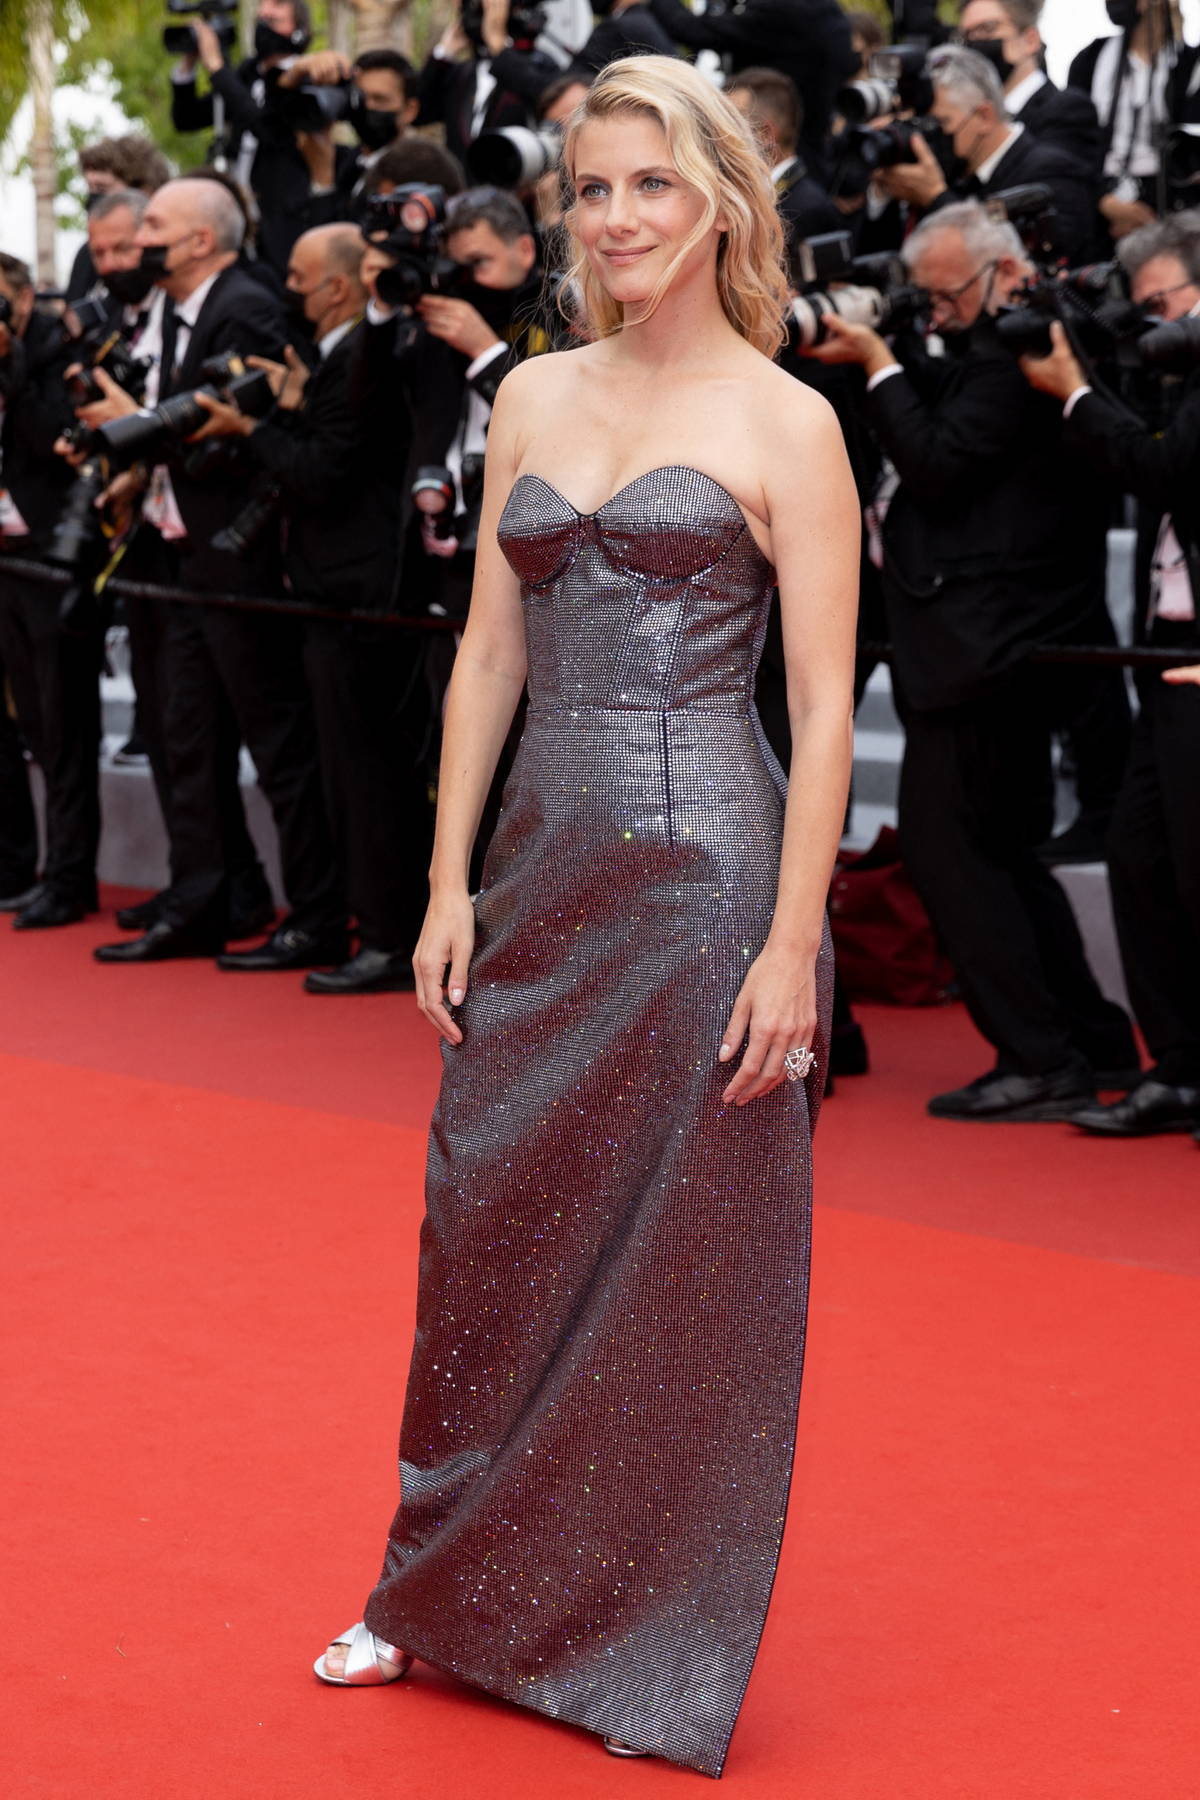 Mélanie Laurent attends the Premiere of 'The French Dispatch' during the 74th annual Cannes Film Festival in Cannes, France